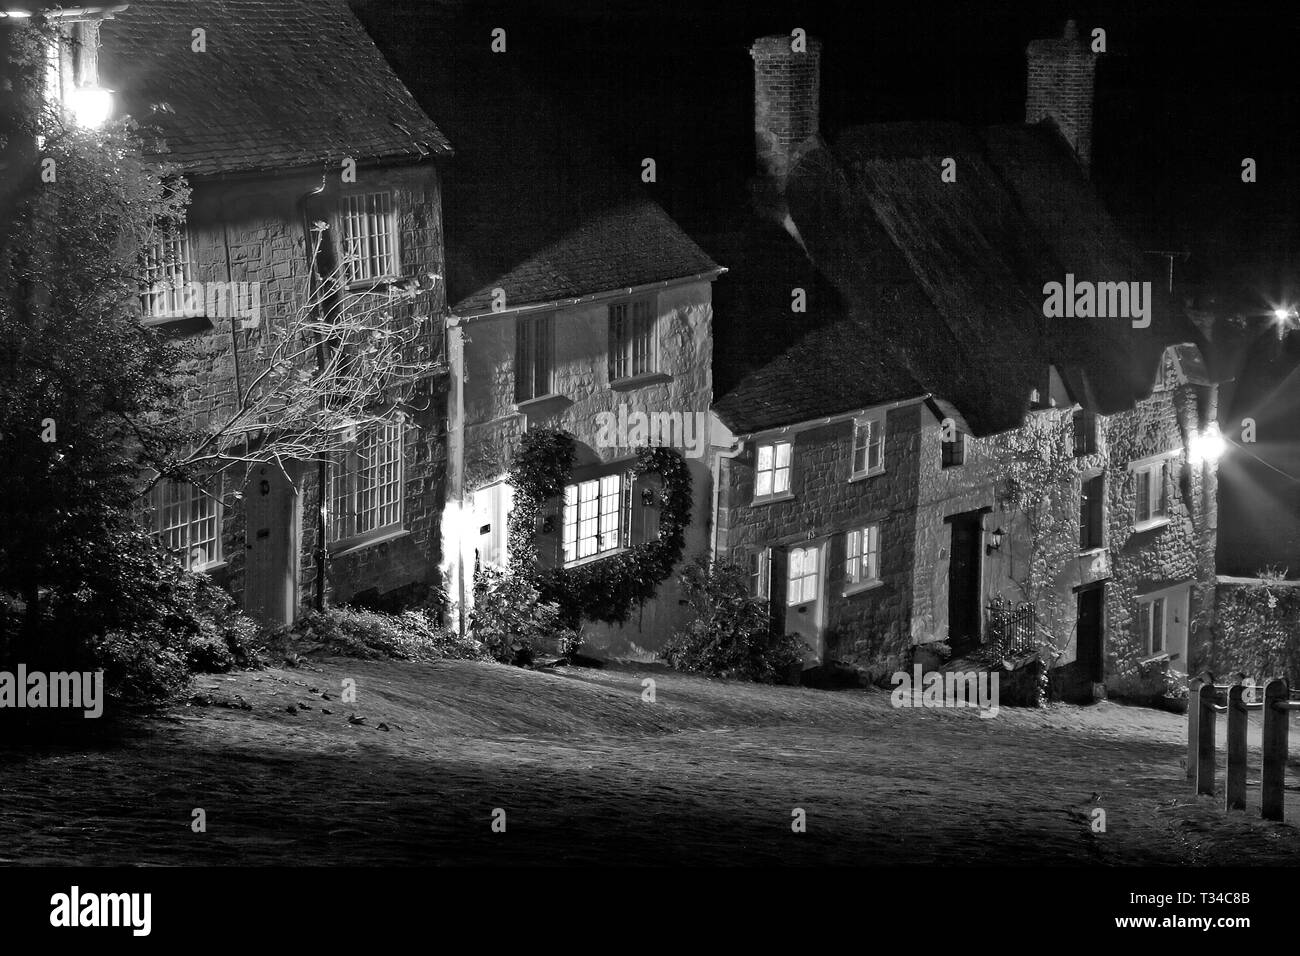 Monochrome image of Gold Hill, Shaftesbury, Dorset, UK - Stock Image